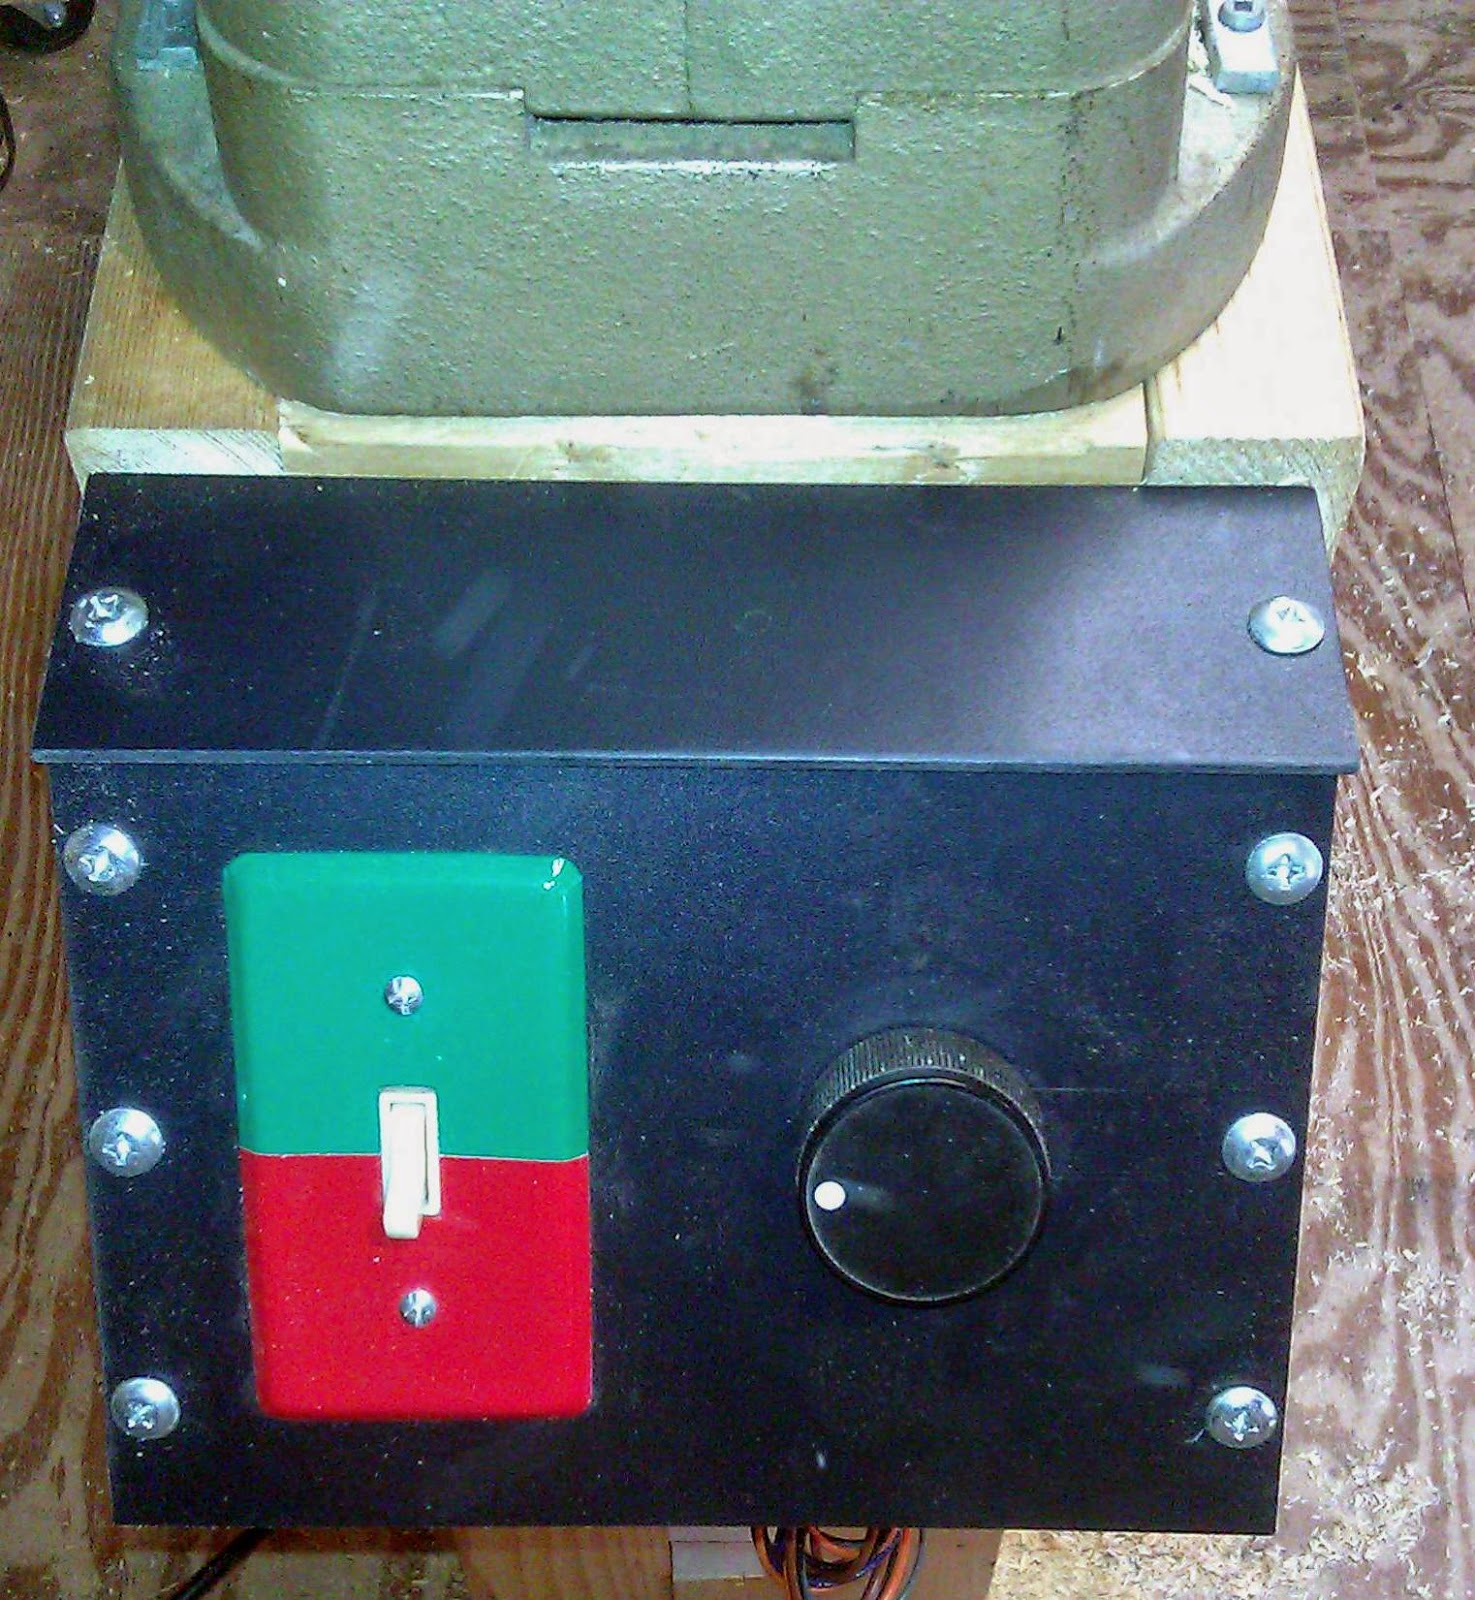 hight resolution of control panel that houses the controller switch and pot the switch plate is a bit garish but fun